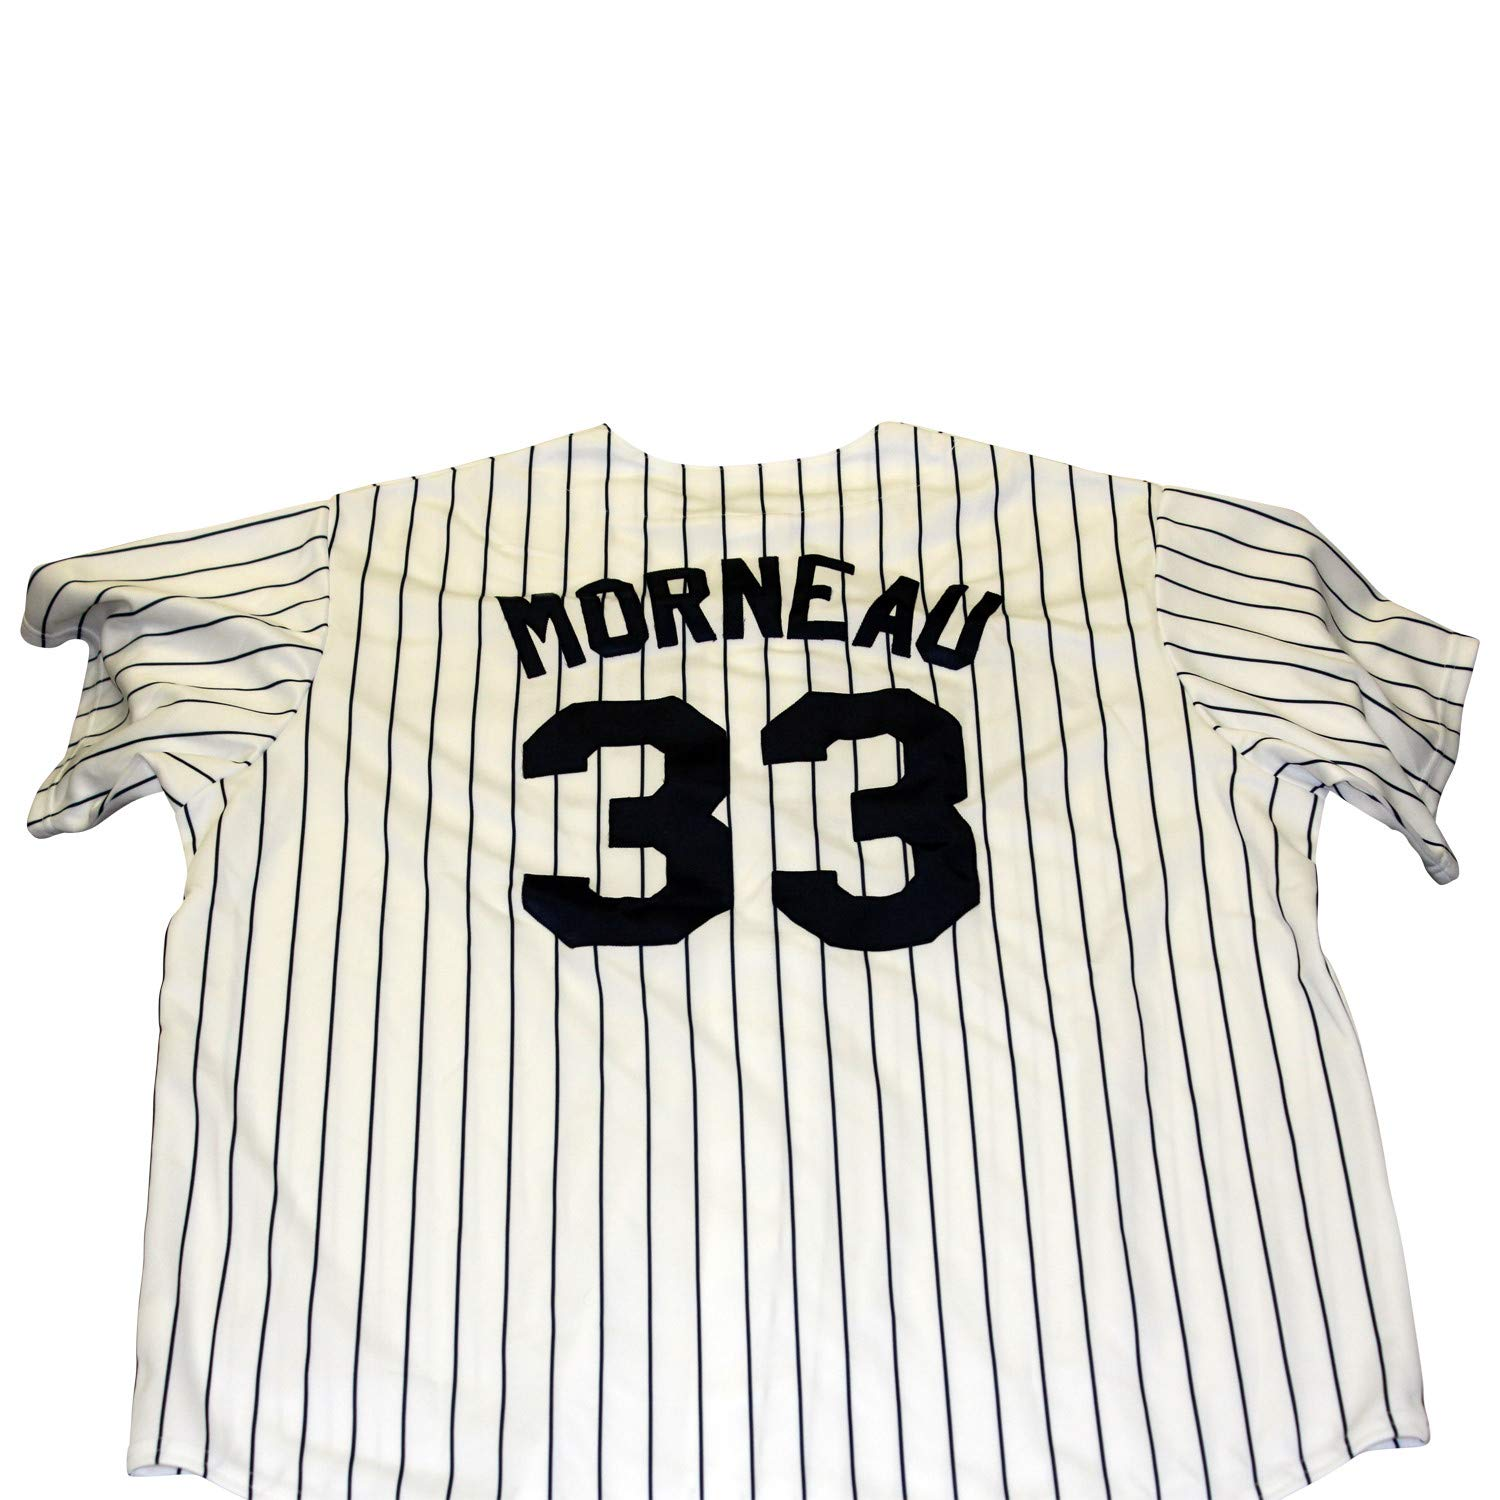 Justin Morneau Minnesota Twins Unsigned Majestic Baseball Jersey - Size XL